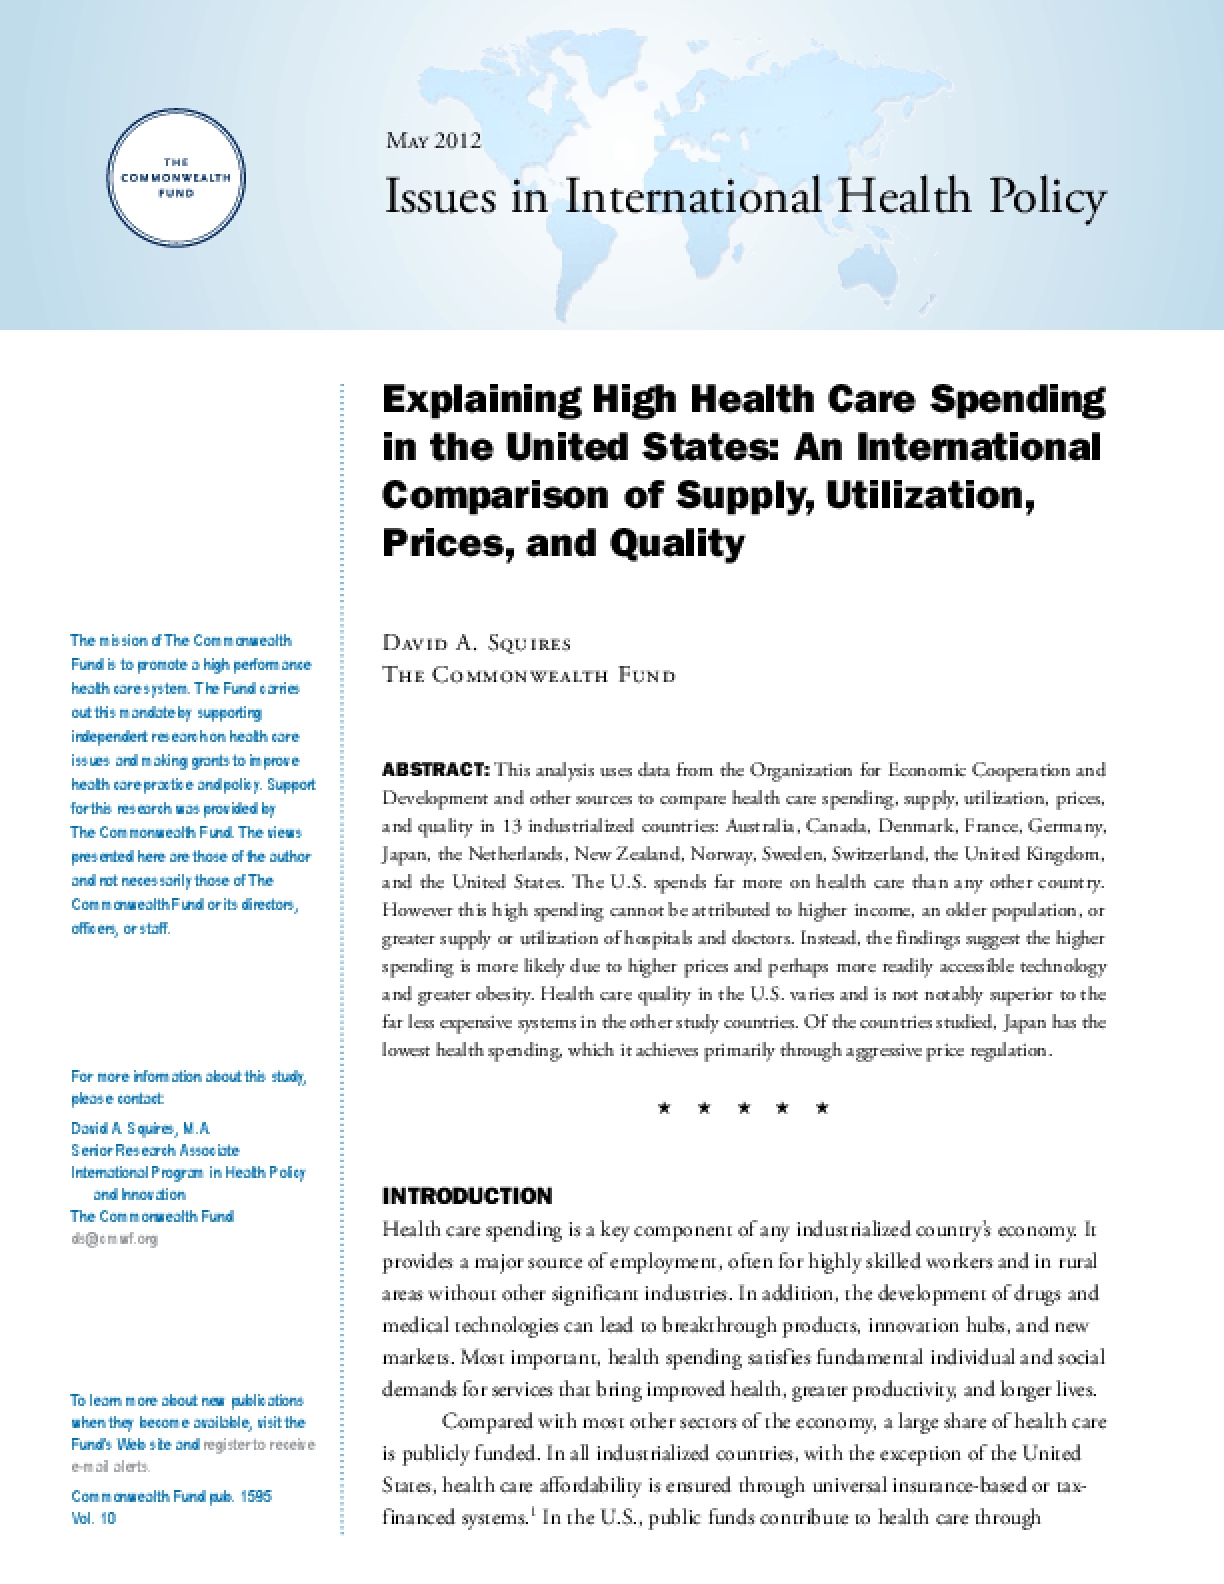 Explaining High Health Care Spending in the United States: An International Comparison of Supply, Utilization, Prices, and Quality